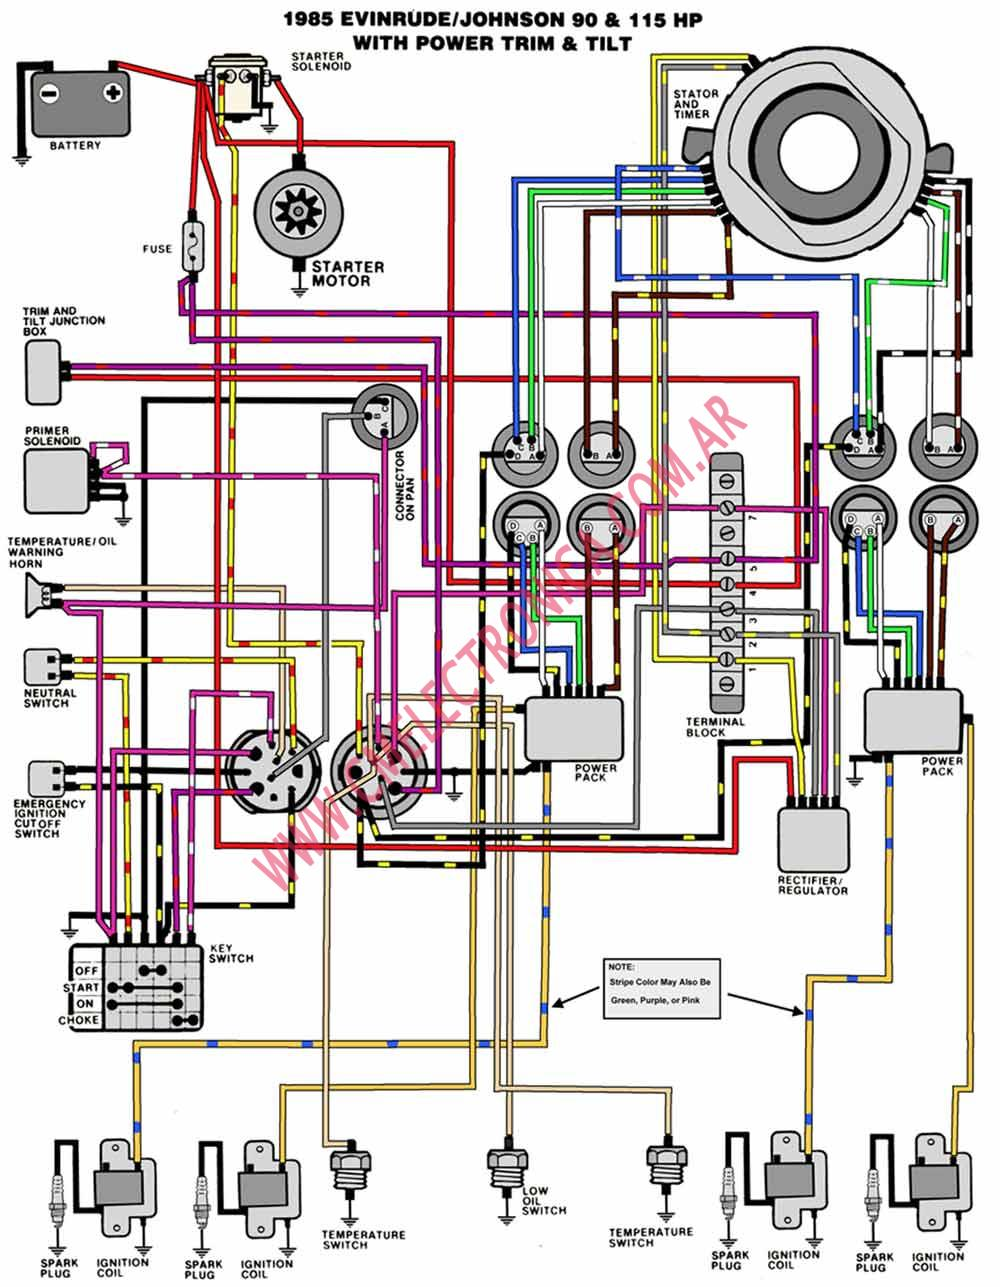 evinrude_johnson 1985_90_115 tnt 2 yamaha f115 wiring diagram yamaha outboard control wiring diagram  at bayanpartner.co